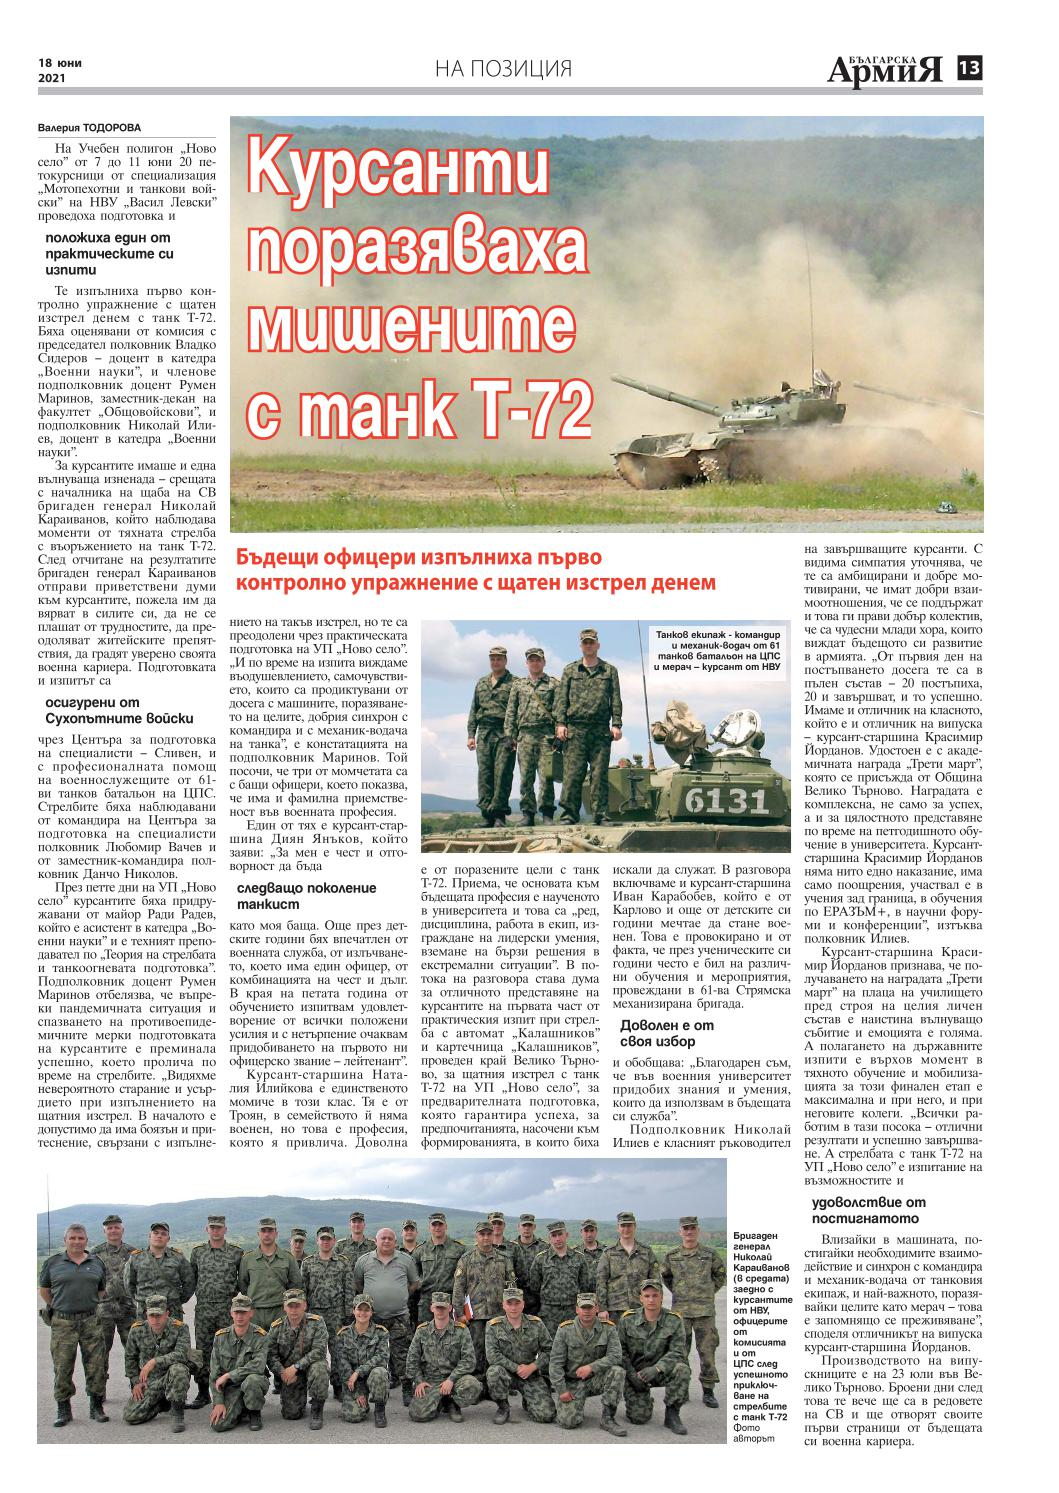 https://armymedia.bg/wp-content/uploads/2021/06/13.page1_-2.jpg